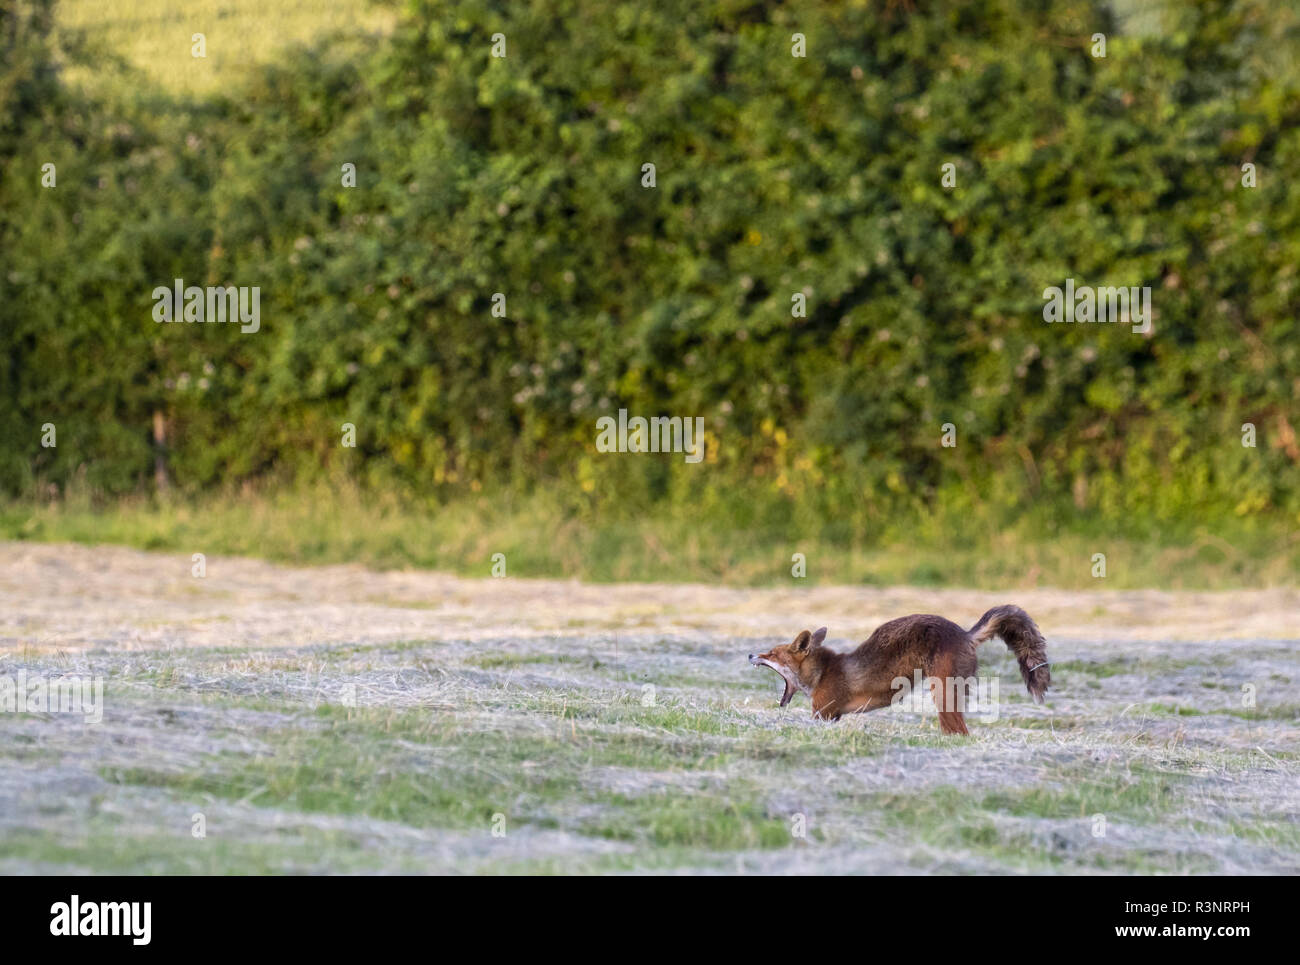 Red fox (Vulpes vulpes) stretching in a meadow, England - Stock Image